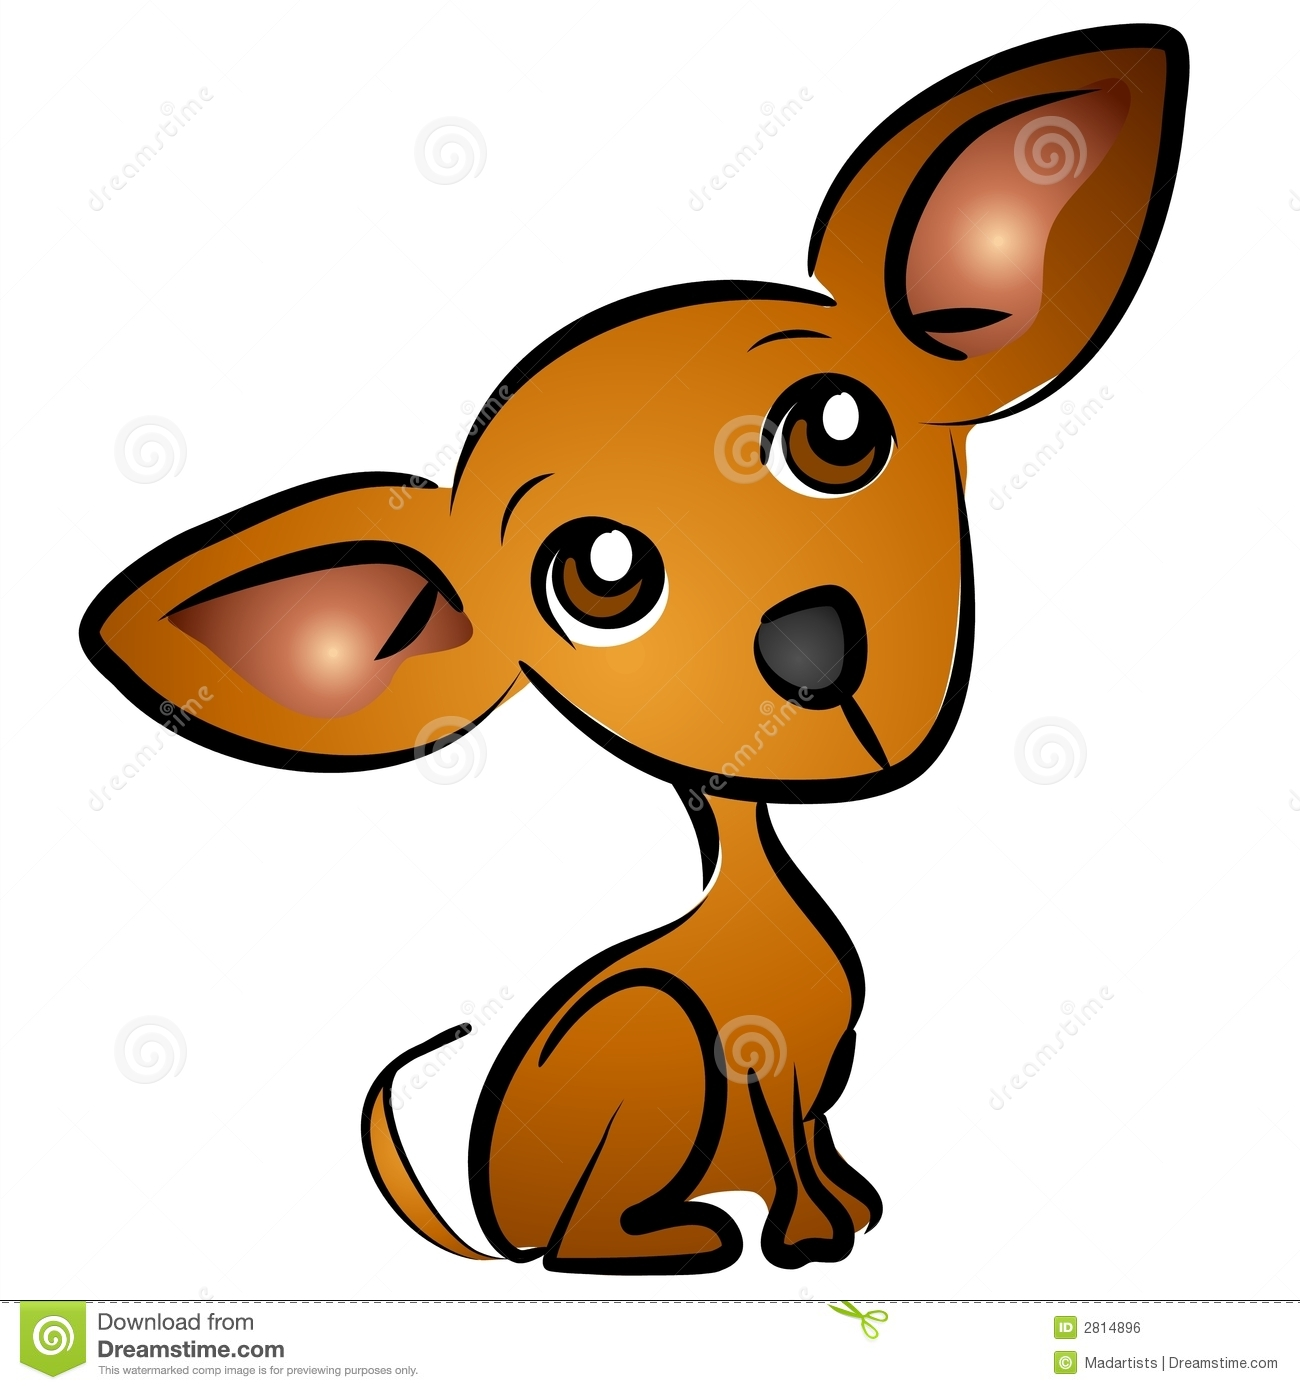 Clip Art Chihuahua Clipart chihuahua clipart kid small brown dog cartoon clip art illustration with classic